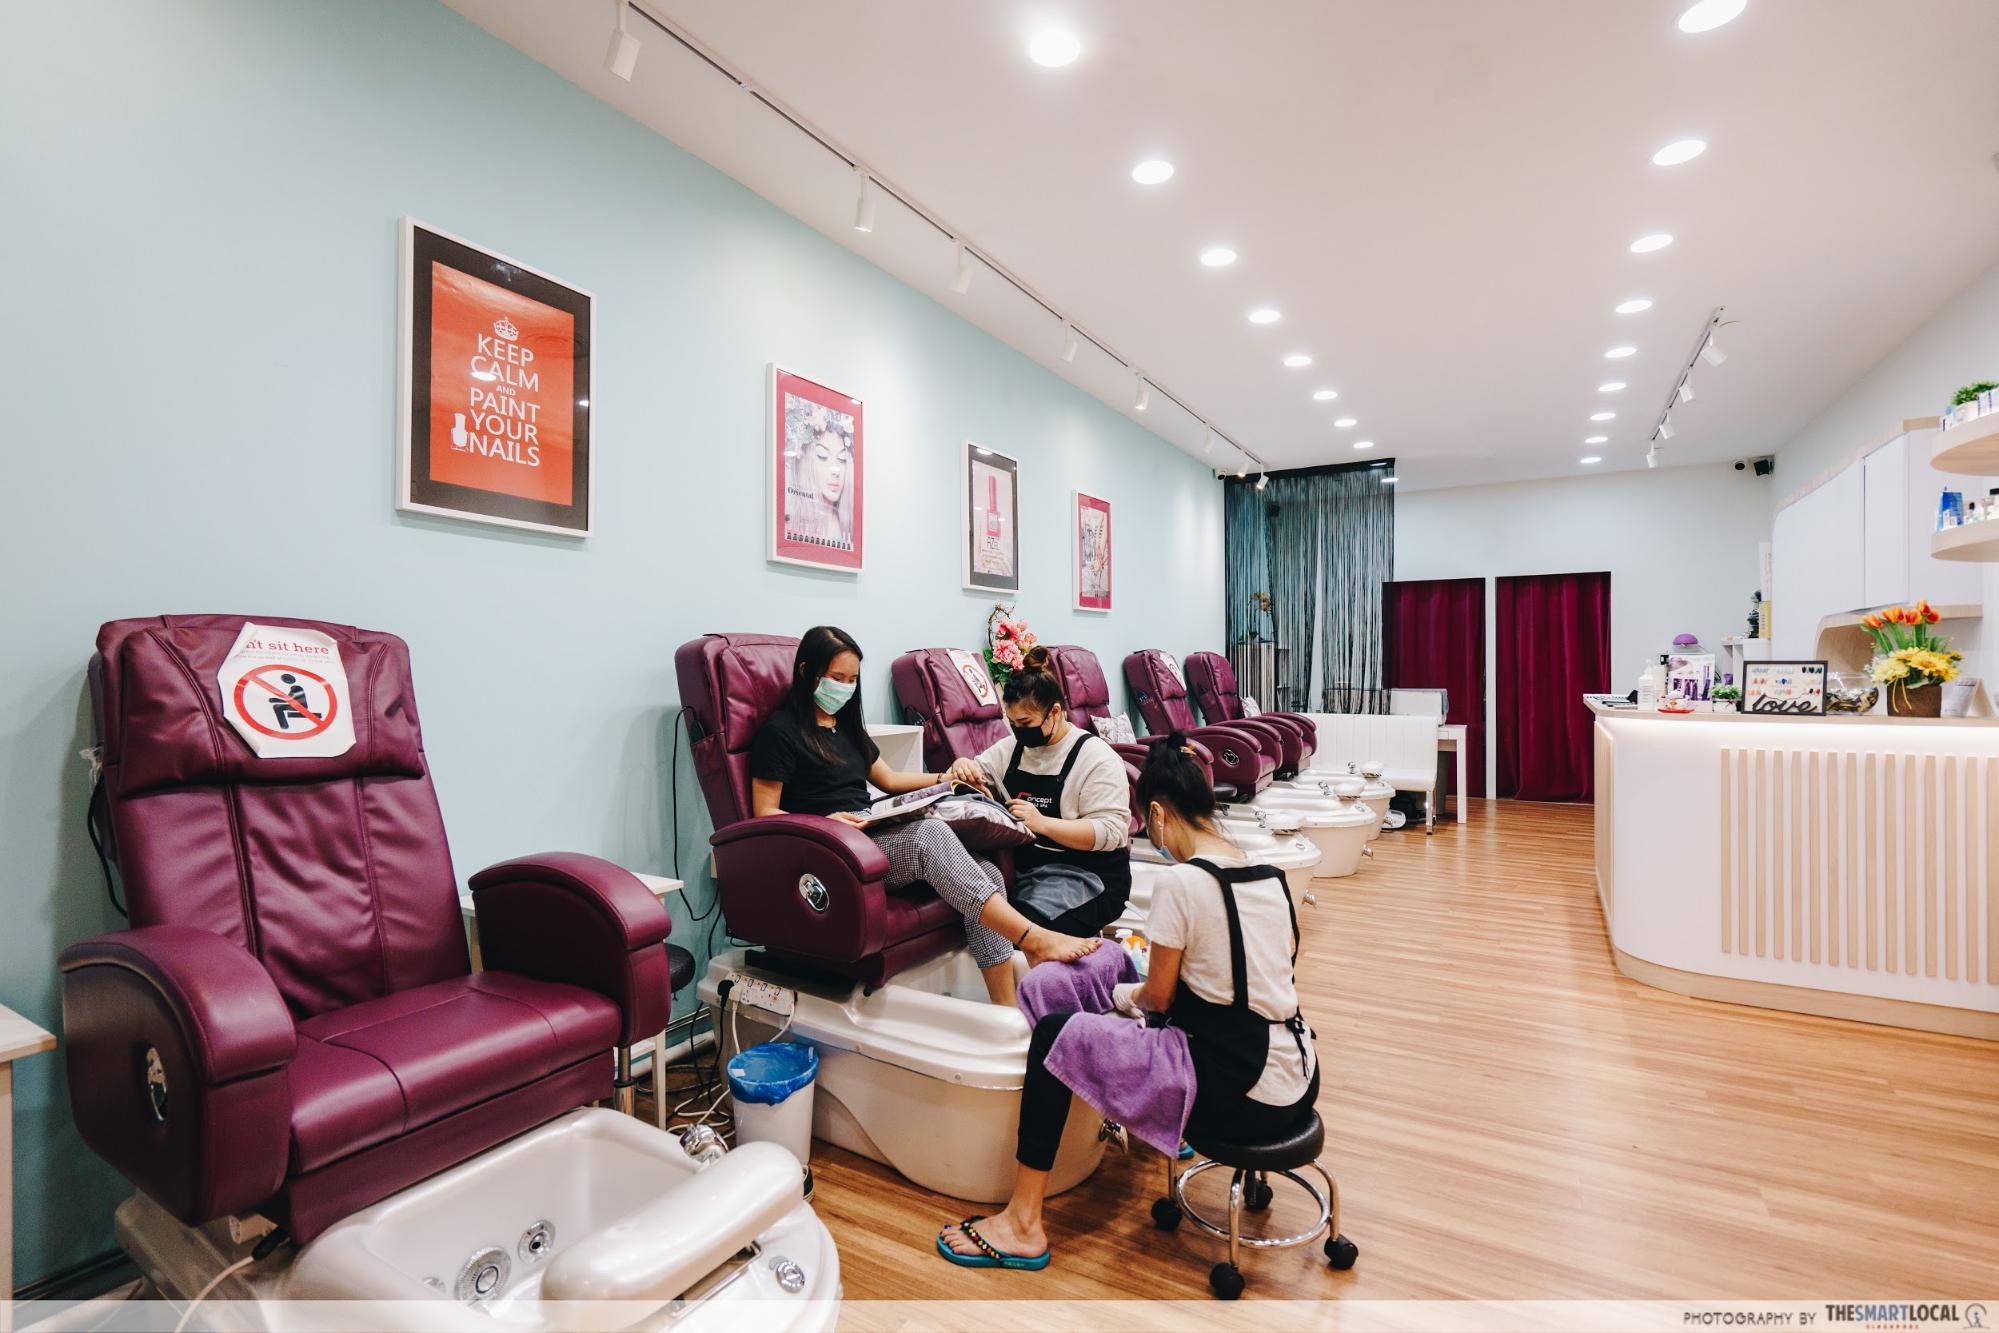 City Square Mall National Day Promos - Concept Nailz Spa